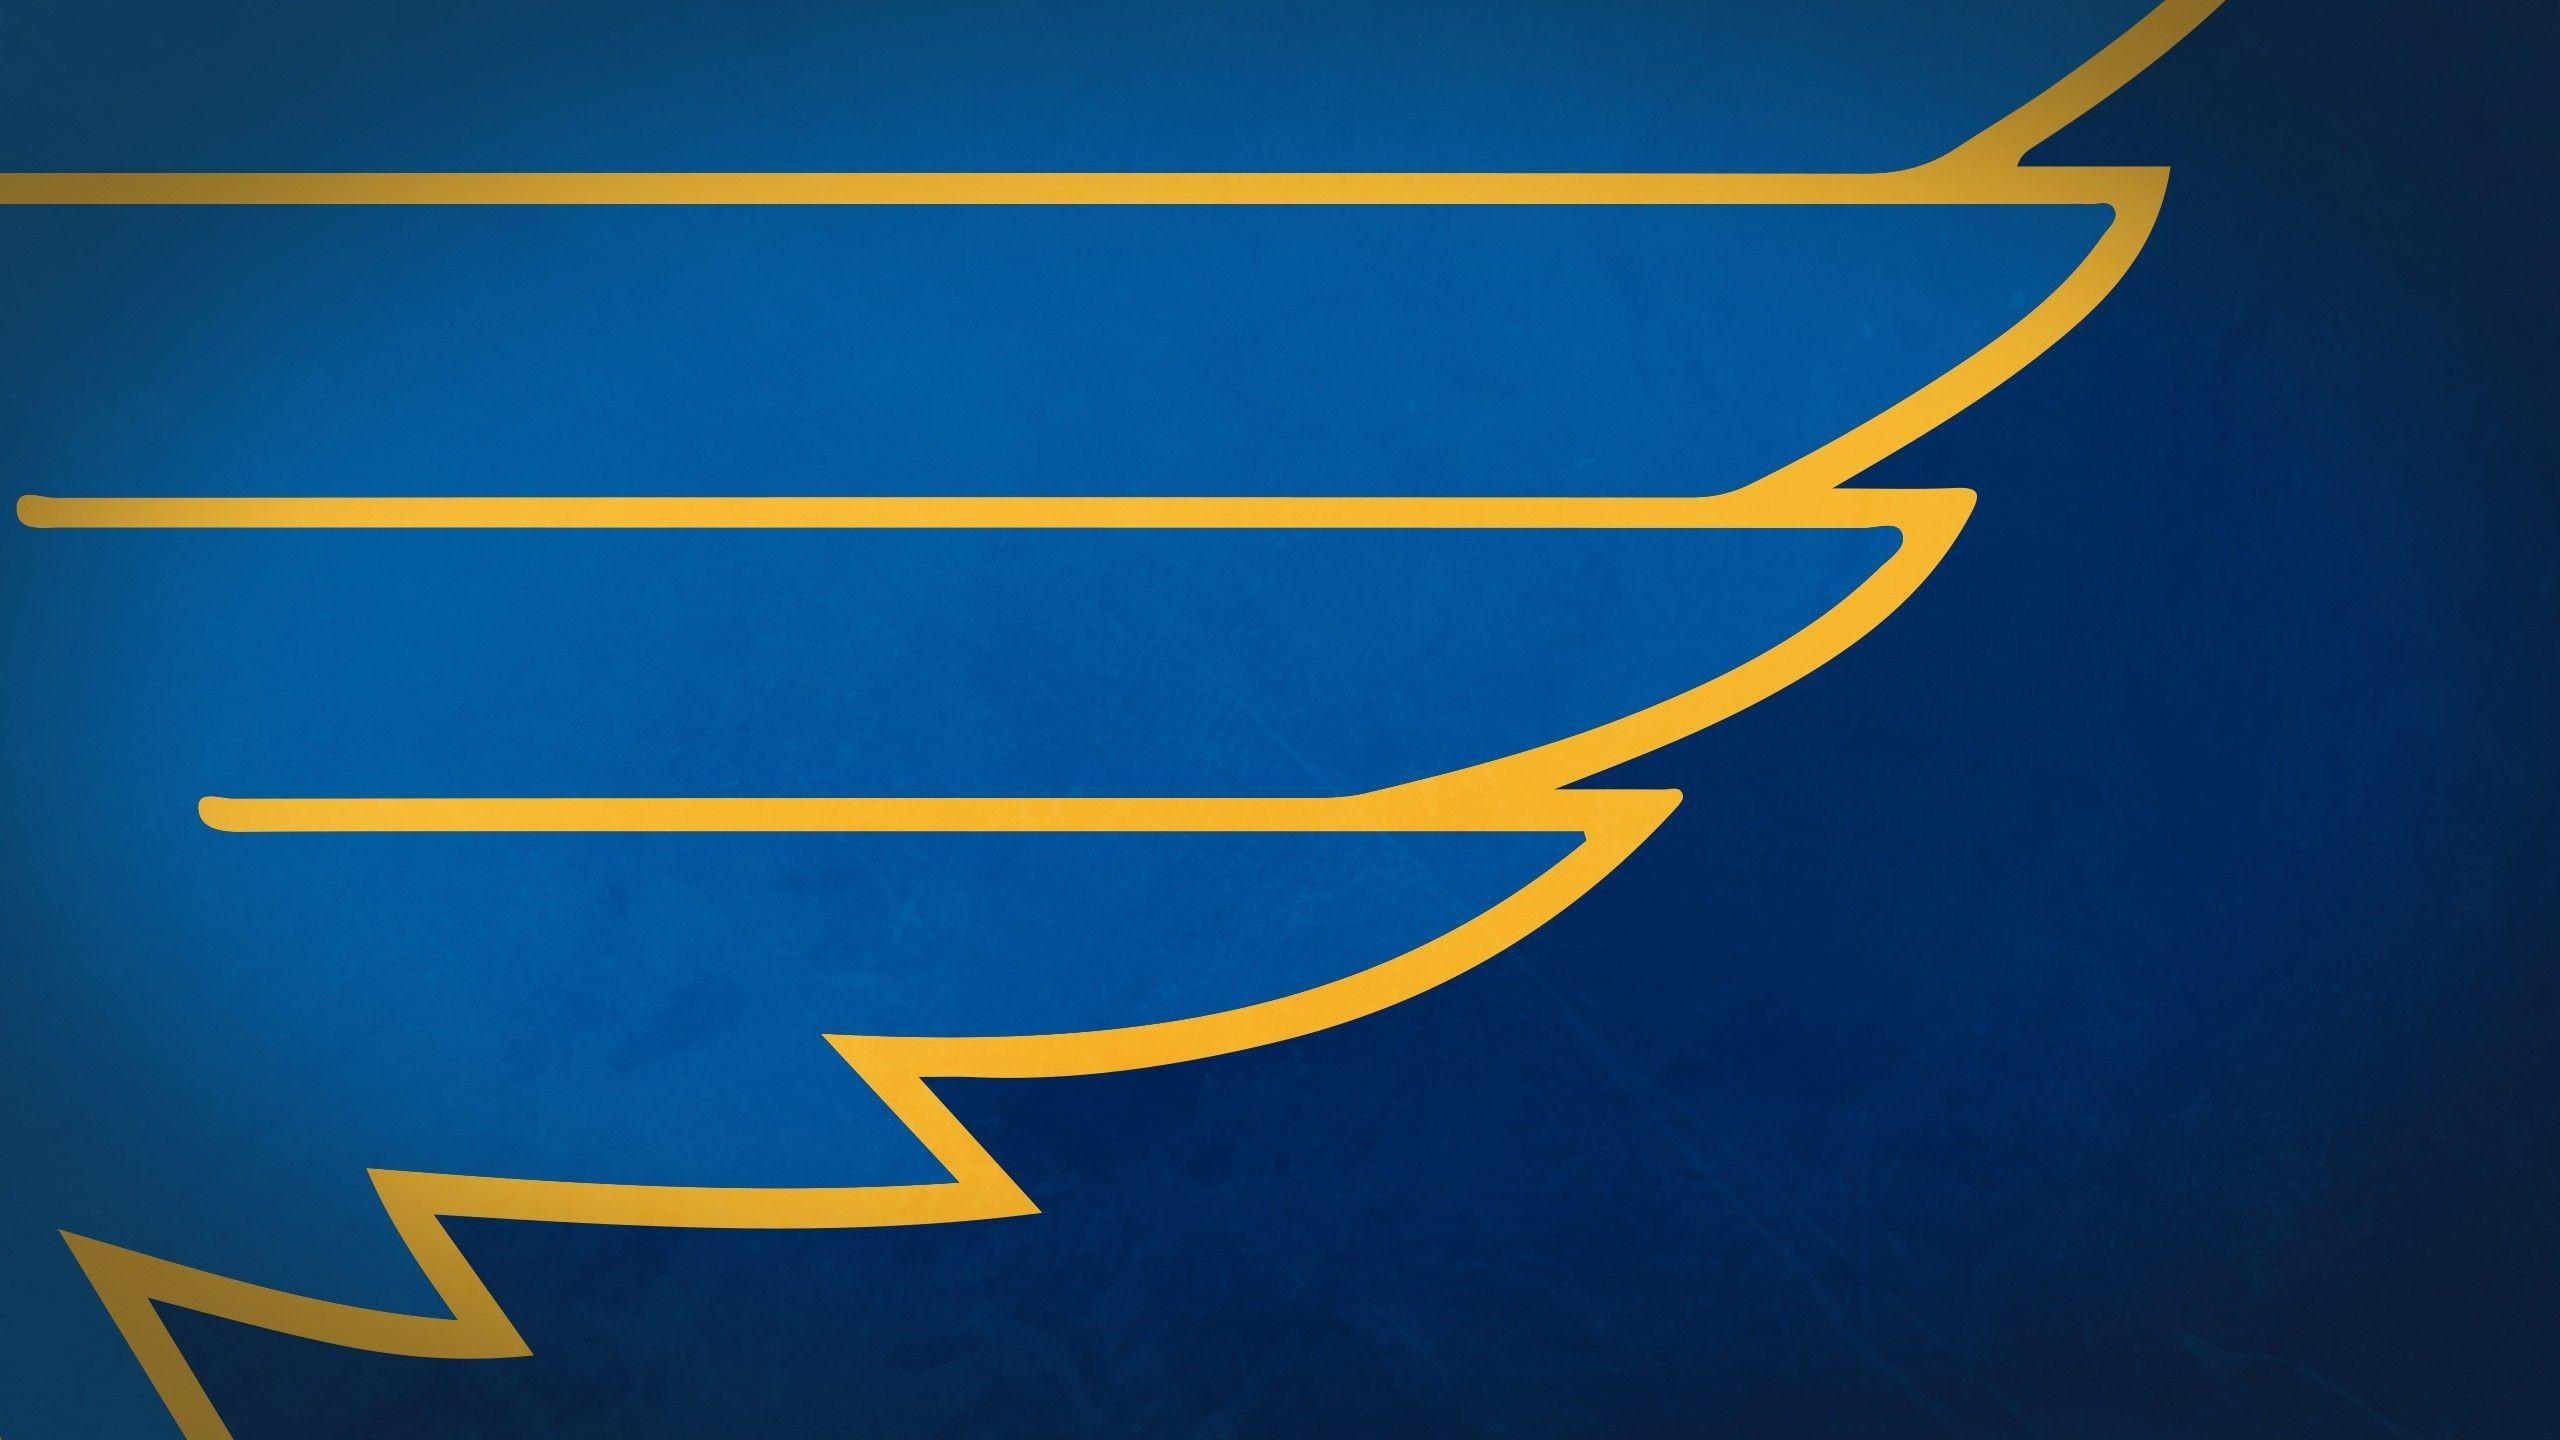 2560x1440 St Louis Blues Wallpapers - Wallpaper Cave